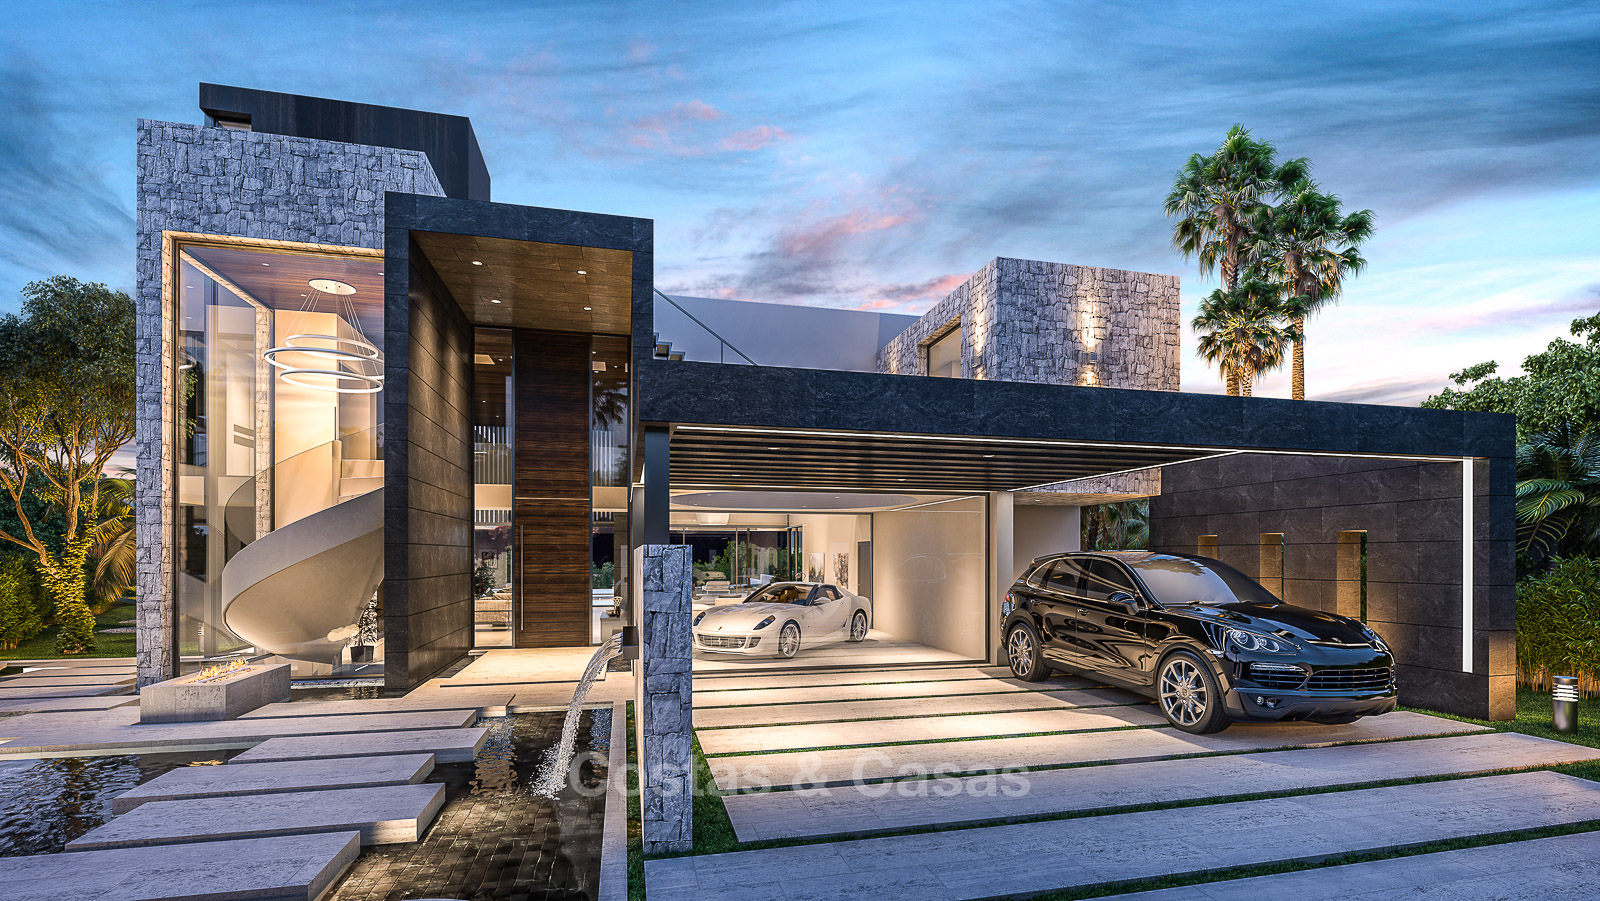 Luxury modern villa for sale located on a golf course with